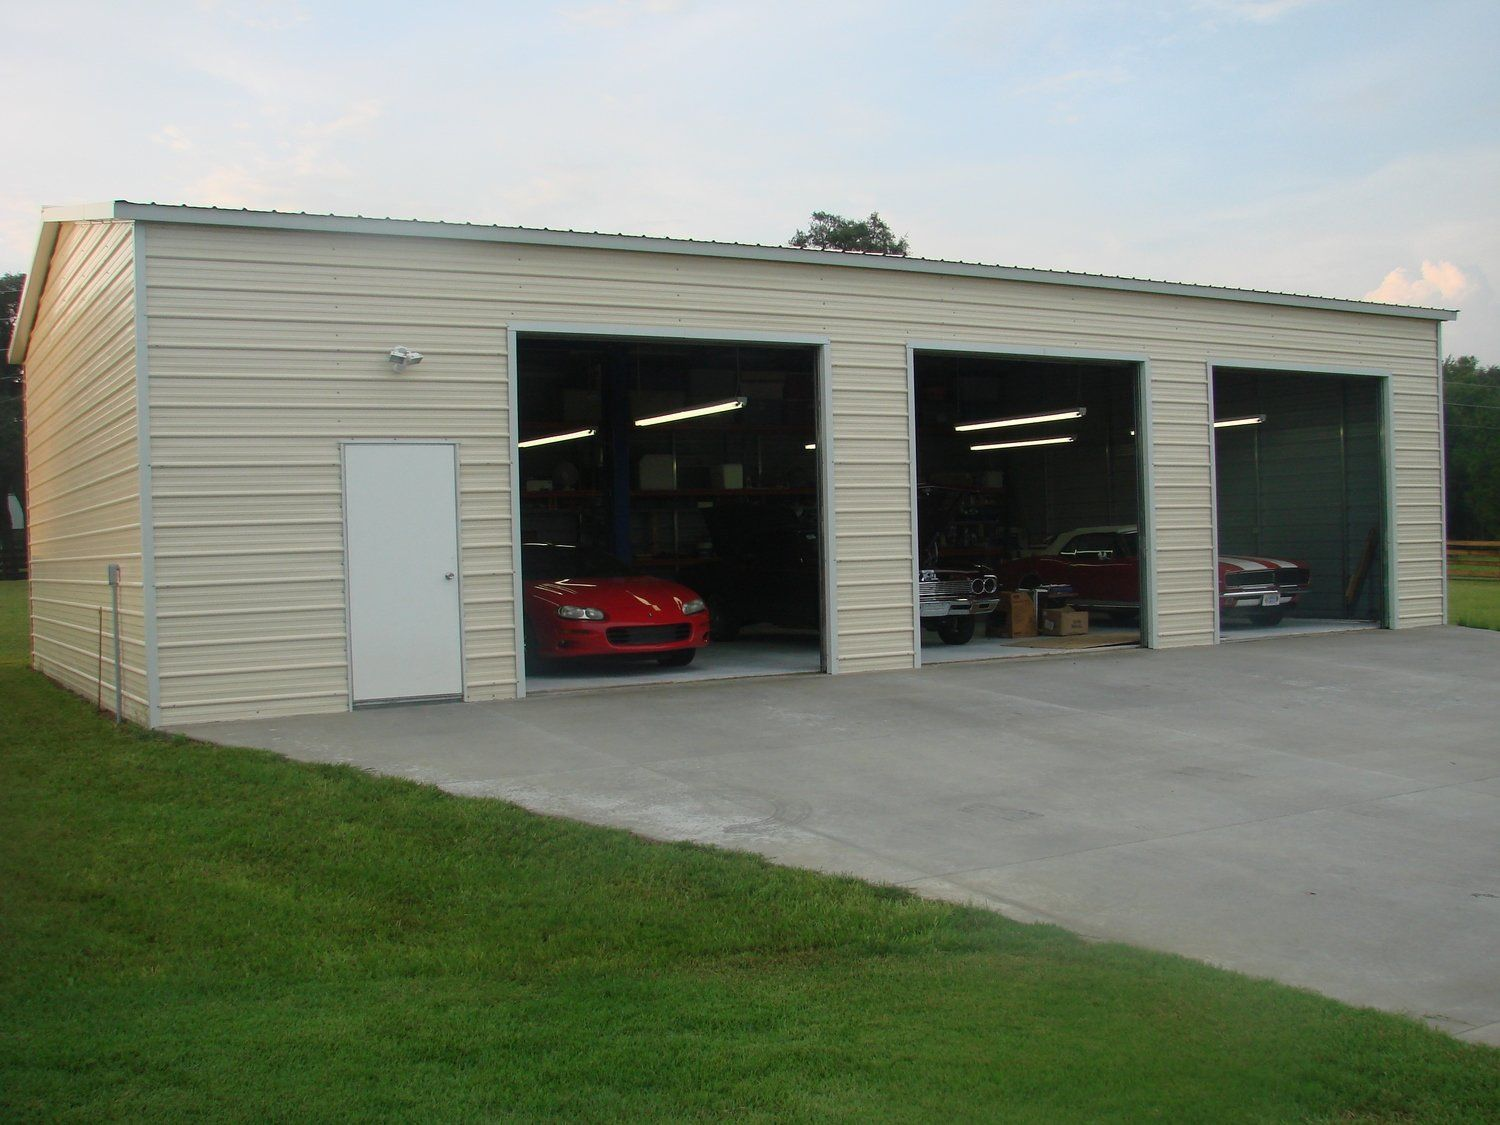 30 X 40 X 12 Workshop With Two 10 X 10 Roll Up Doors And One Walk In Door 8211 Store 821 Metal Garage Buildings Steel Garage Buildings Garage Door Design